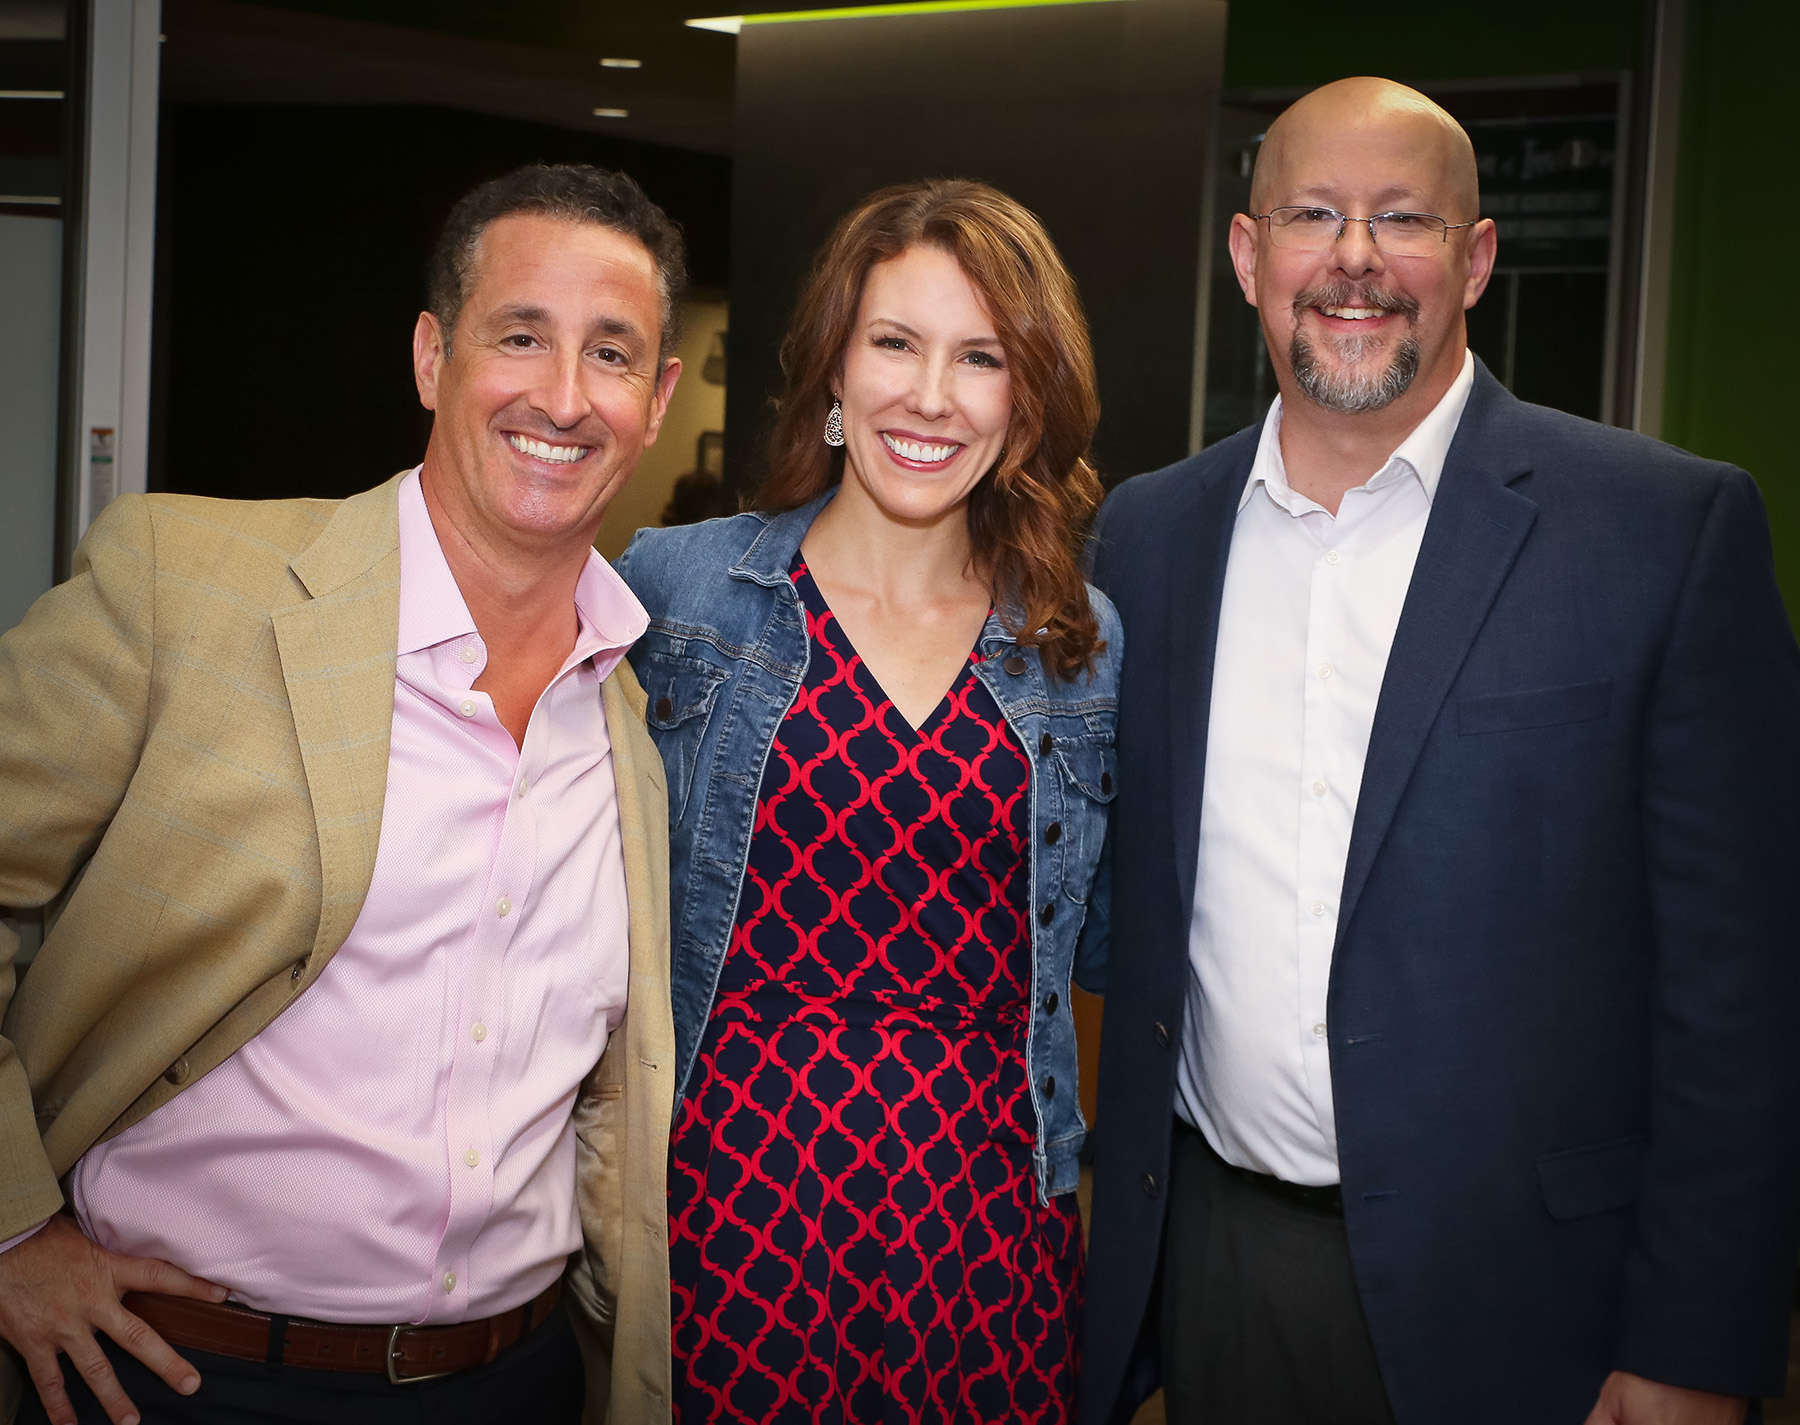 Stephen with Misty Lown and David Mammano, host of the Avanti Entrepreneur podcast which Predictive ROI is honored to produce.